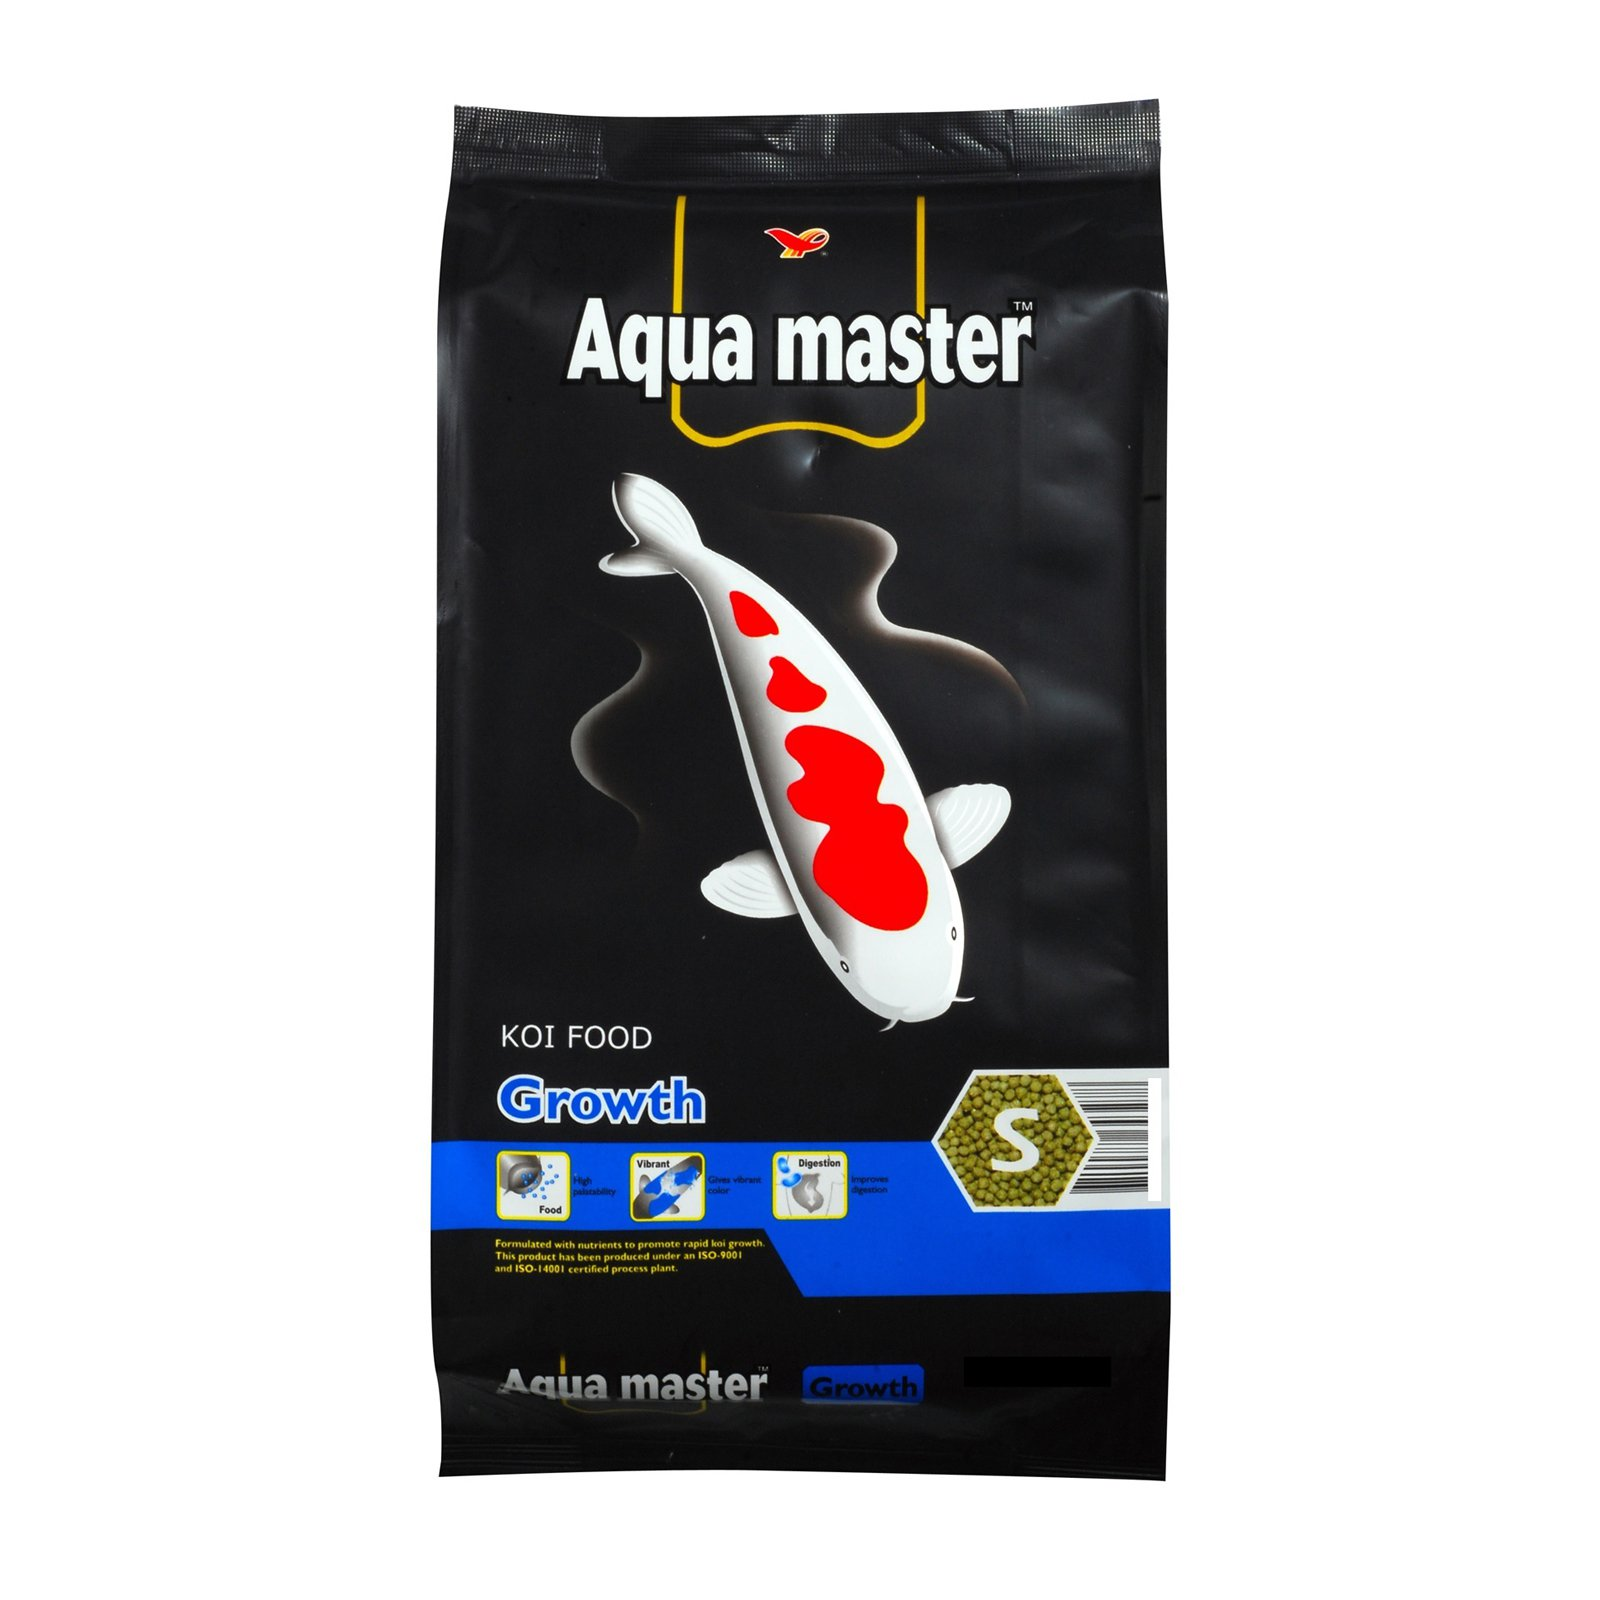 Aqua Master Growth Koi Food by Kokaho Aquarium Co